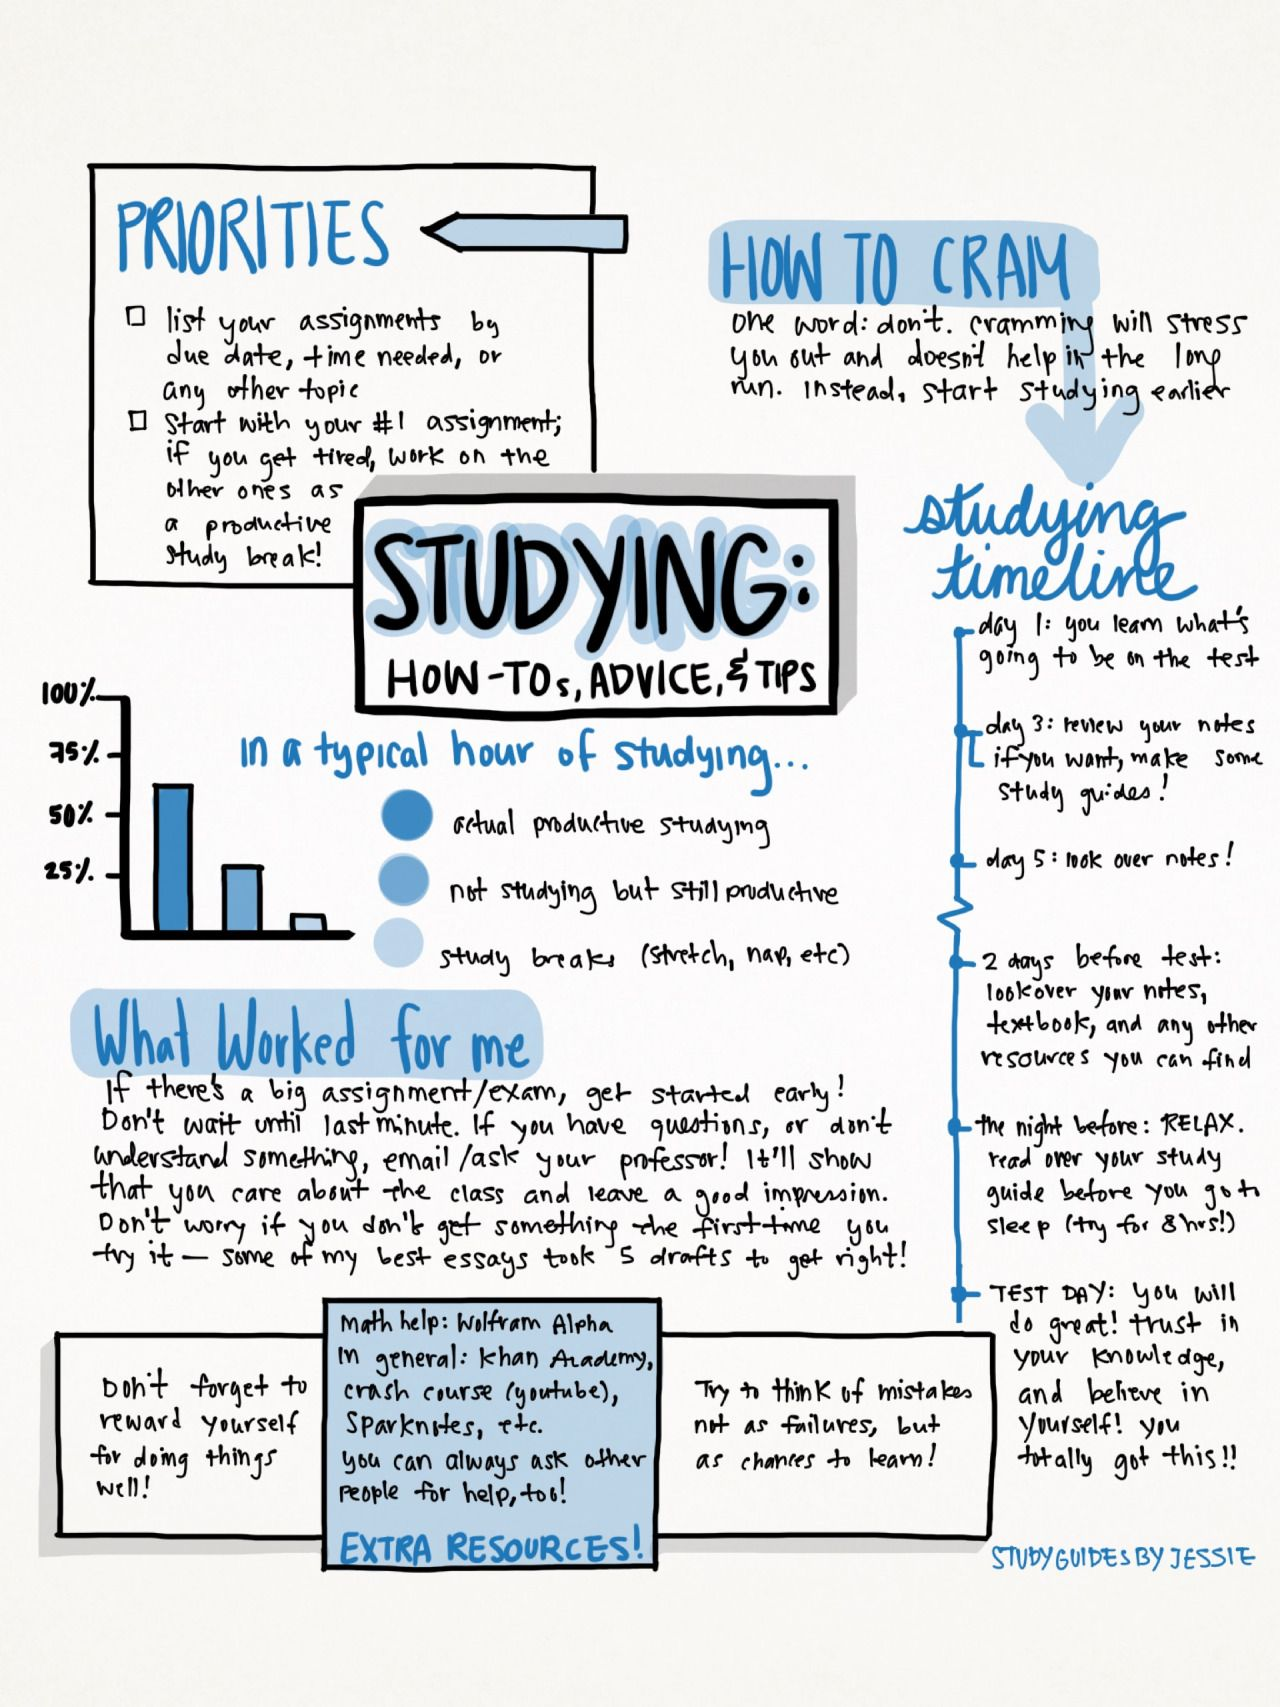 Studyguidesbyjessie Here S A Little Study Guide I Put